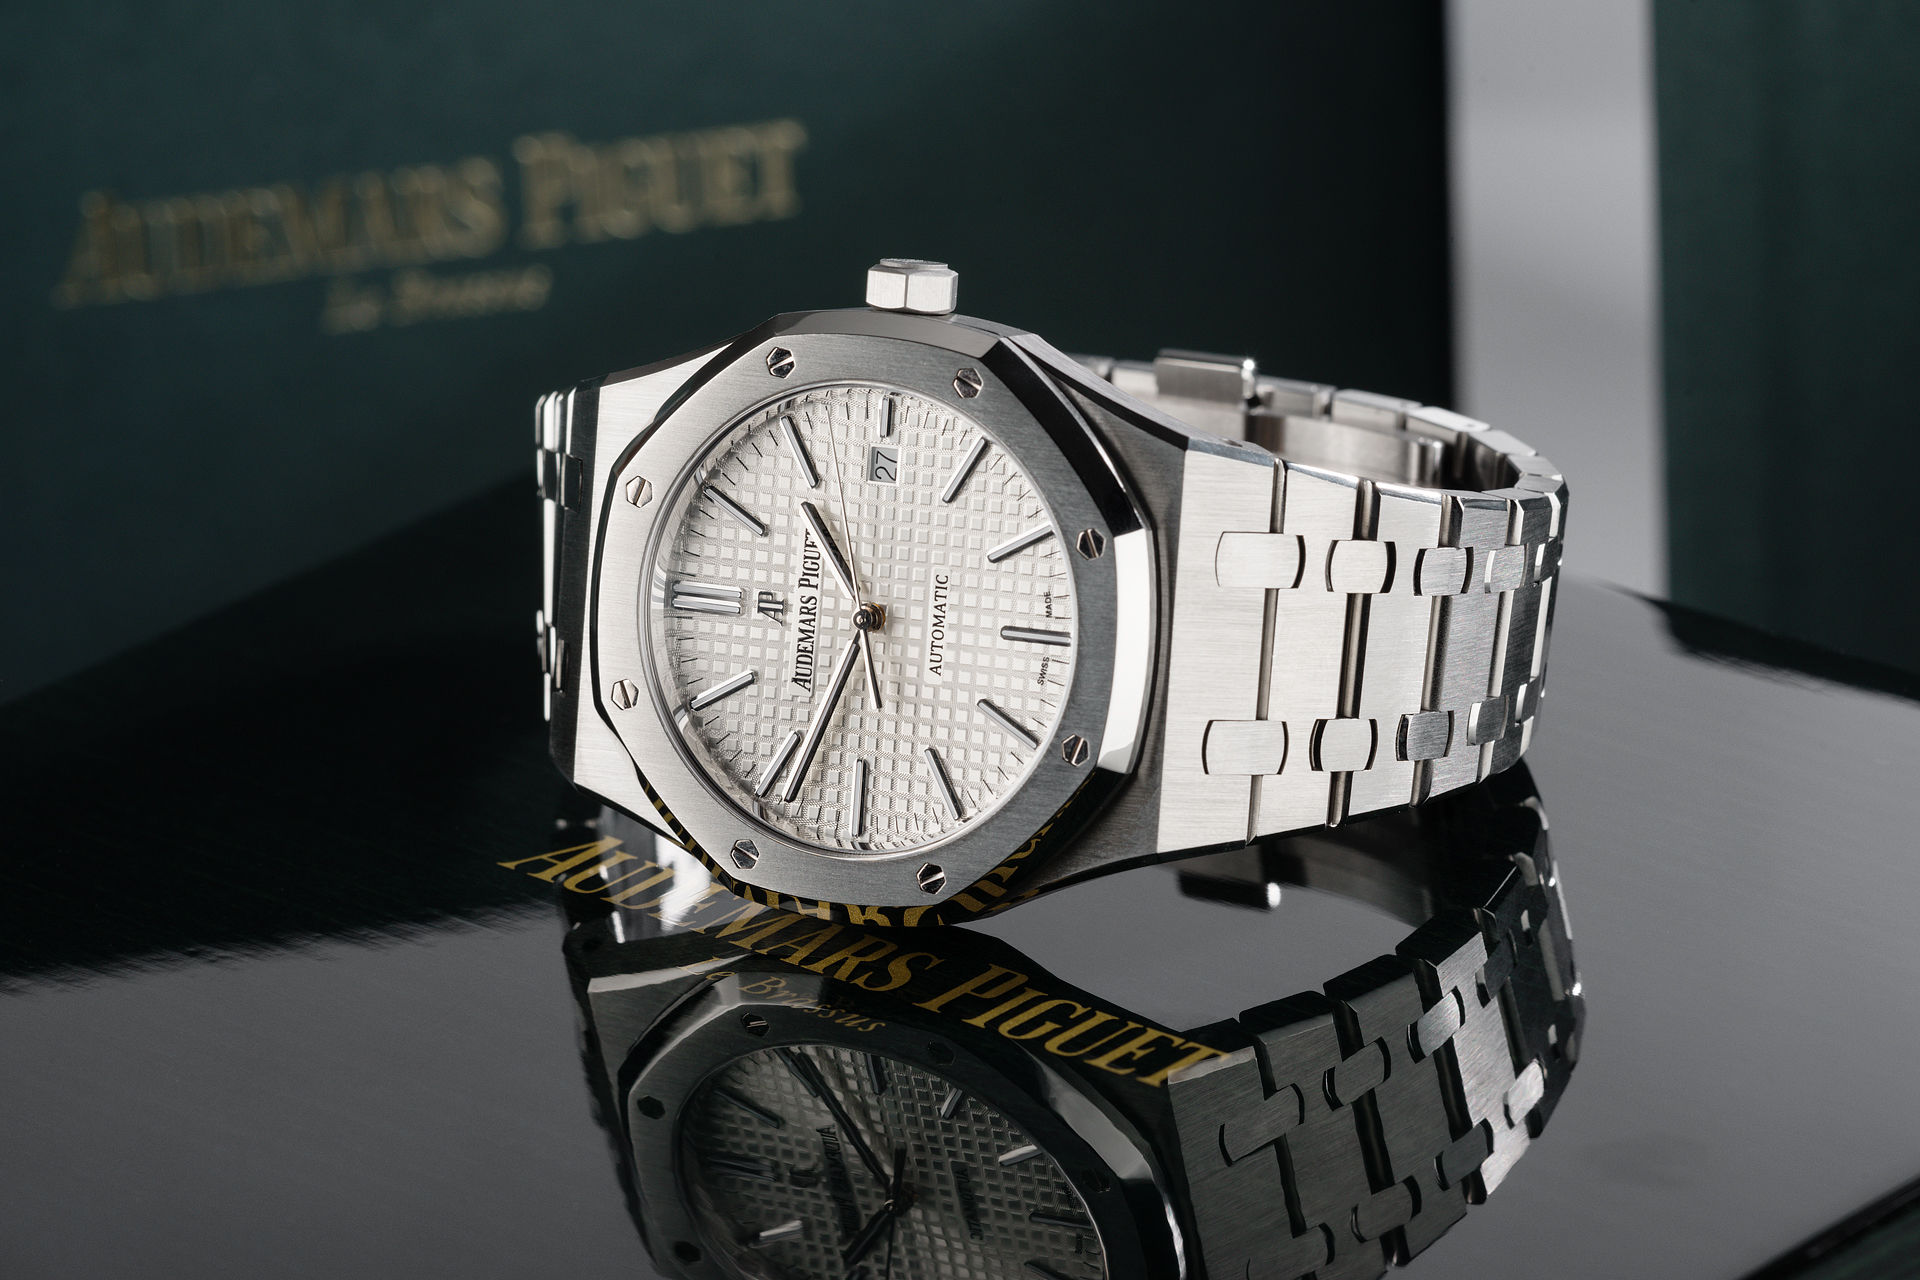 ref 15400ST.OO.1220ST.02 | 'Box & Certificate'  | Audemars Piguet Royal Oak